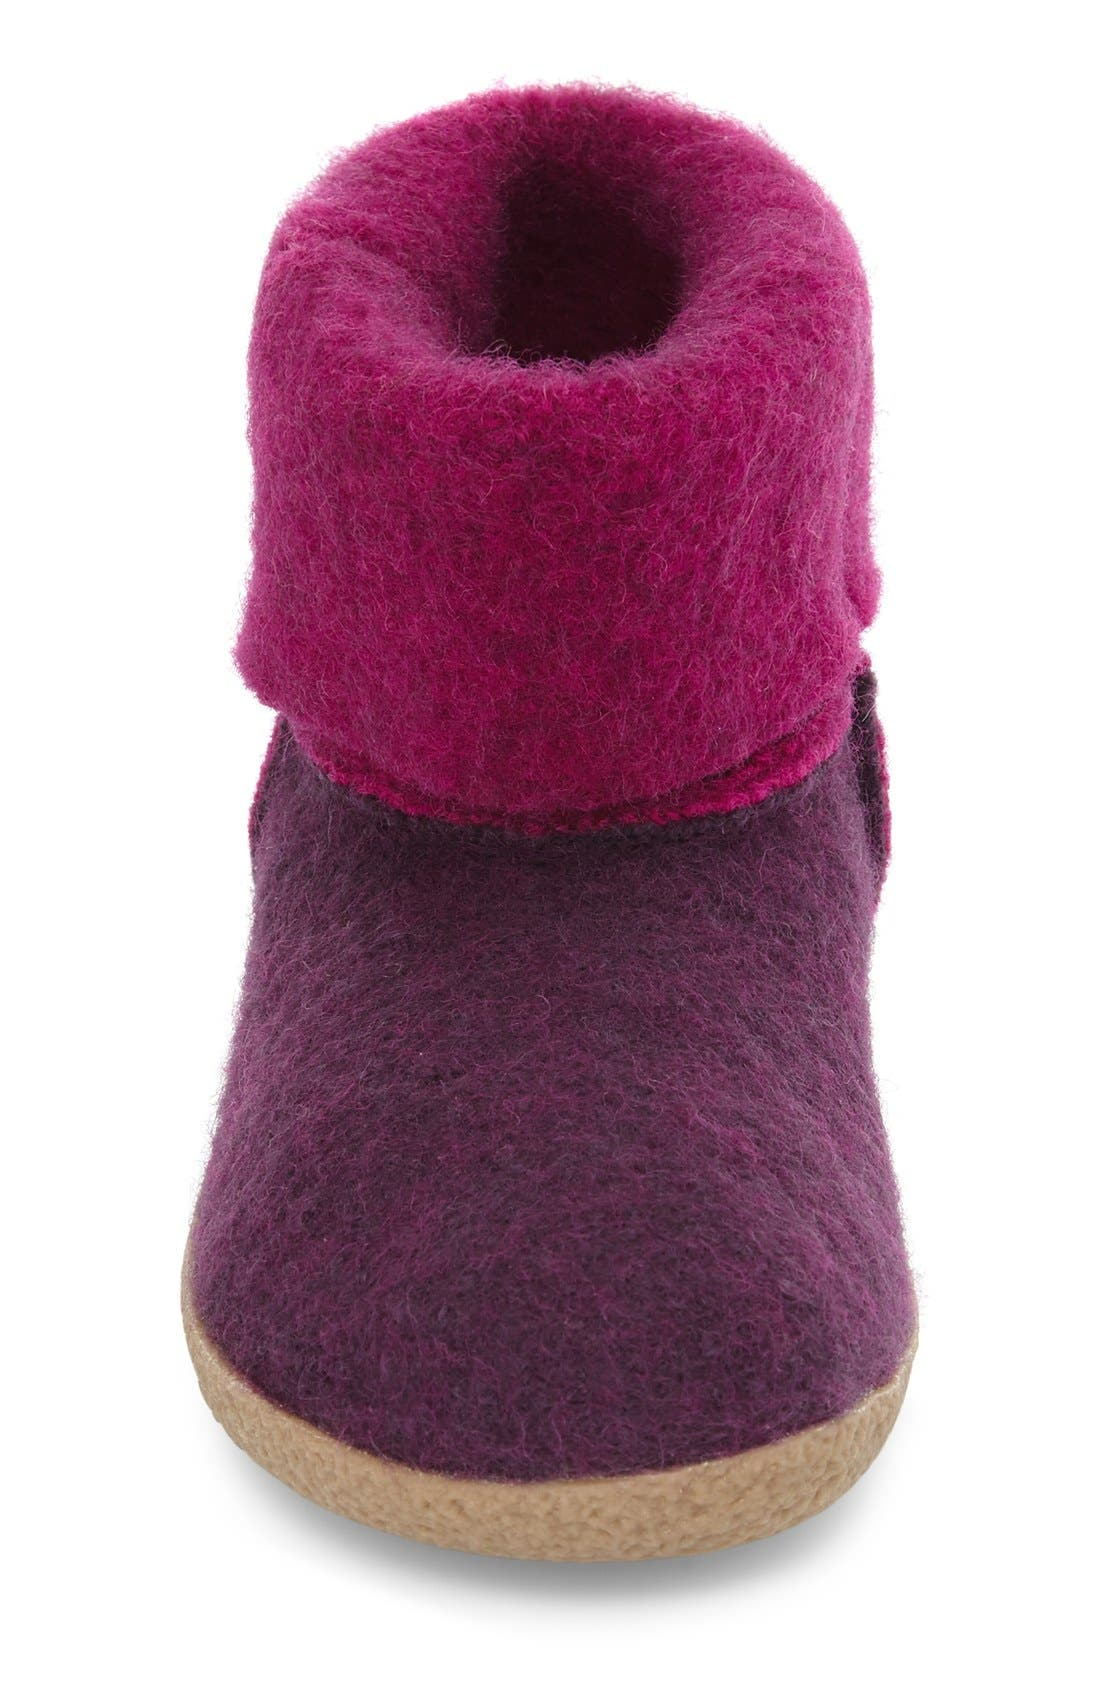 Alternate Image 3  - Giesswein Bigelow Cuffed Water Repellent Slipper (Women)